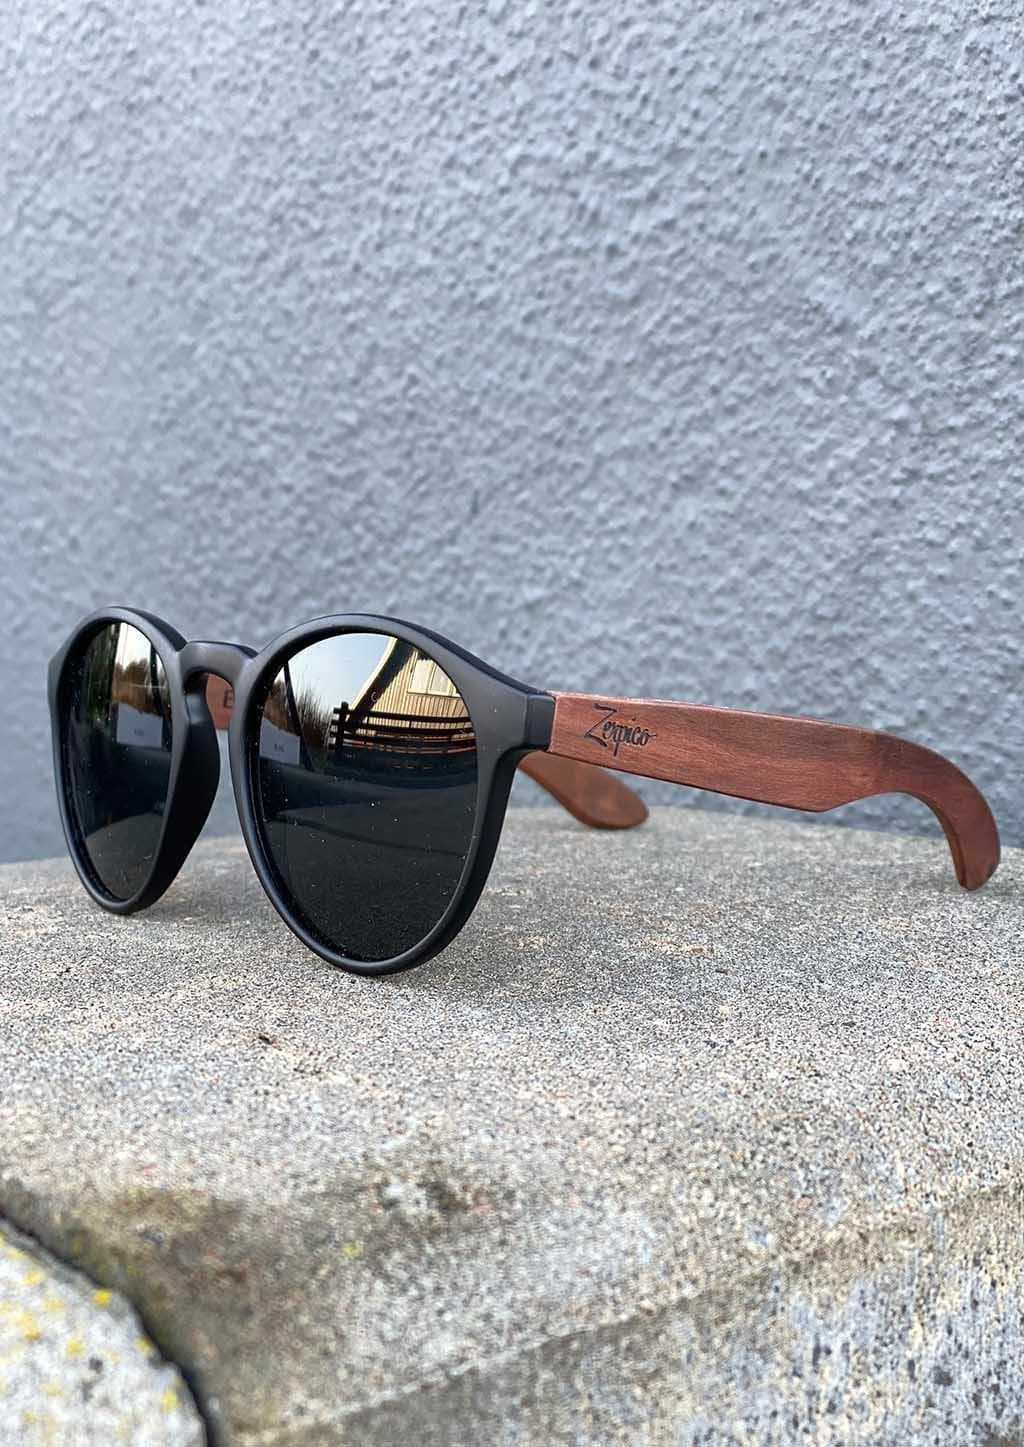 Eyewood Cubs - Simba - Wooden sunglasses for kids.